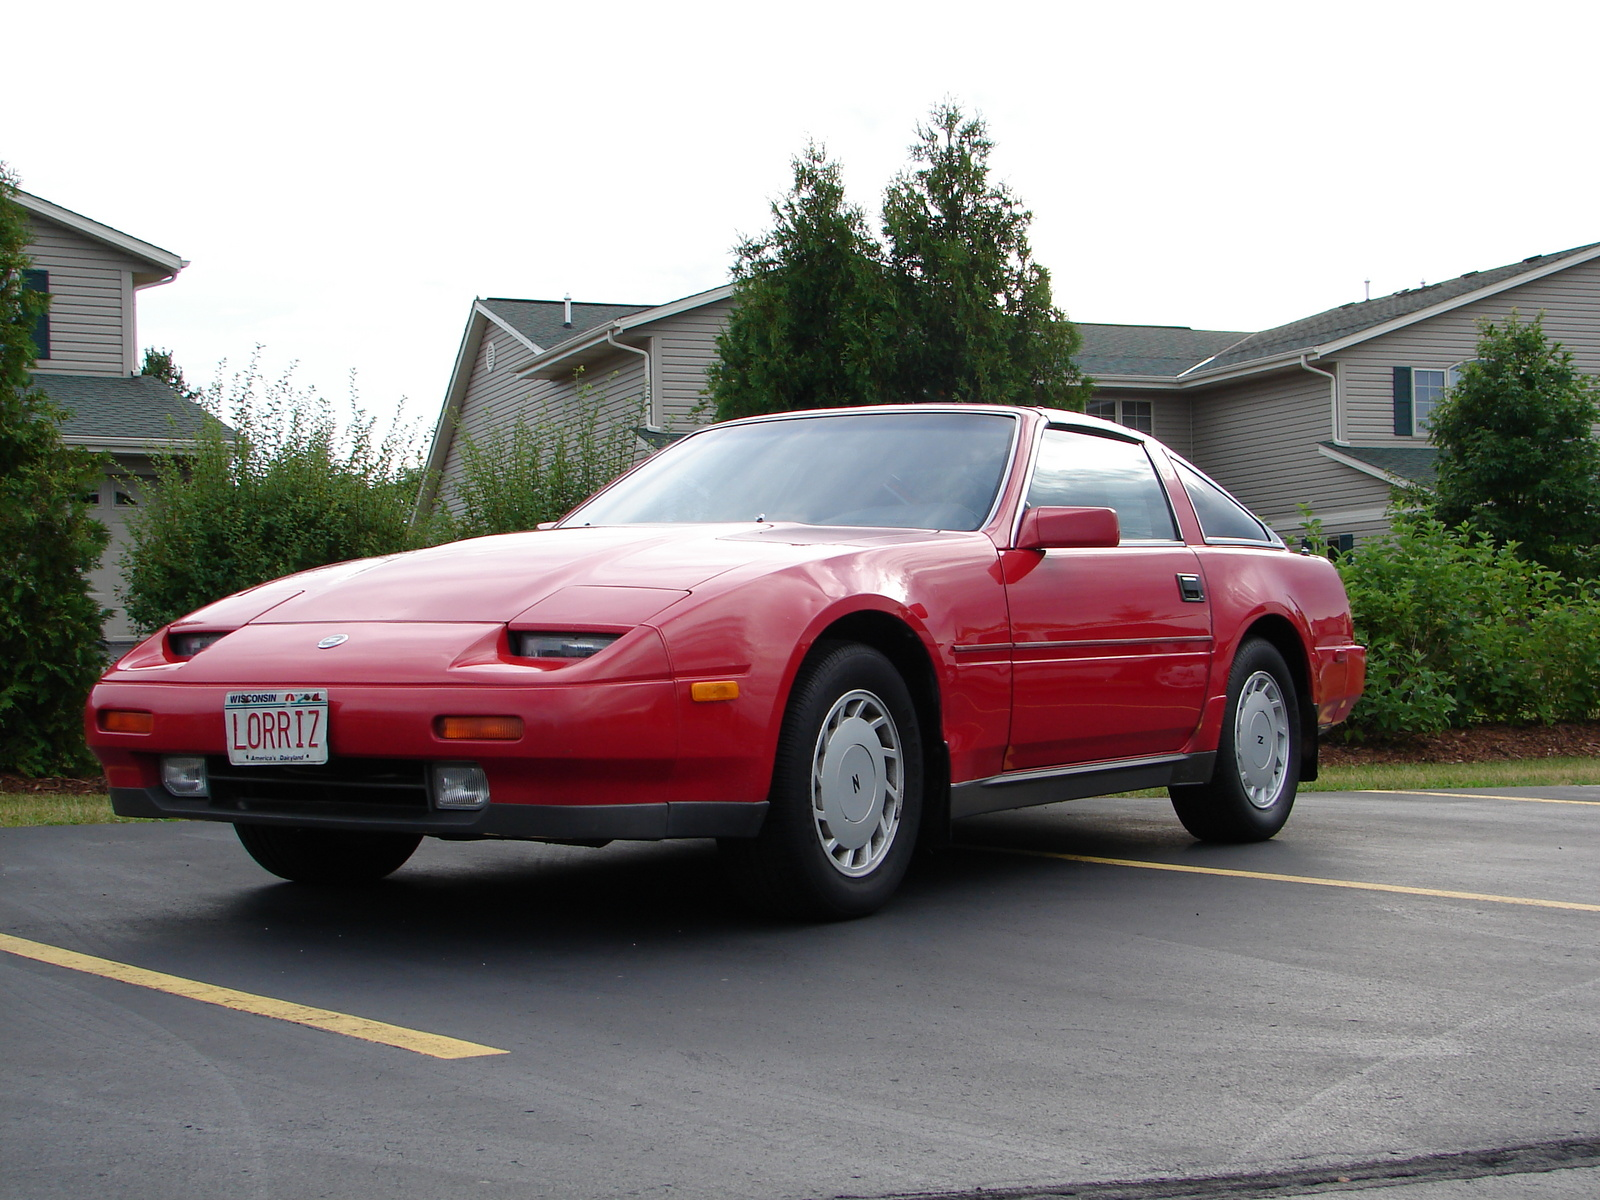 1989 nissan 300zx user reviews cargurus autos post. Black Bedroom Furniture Sets. Home Design Ideas